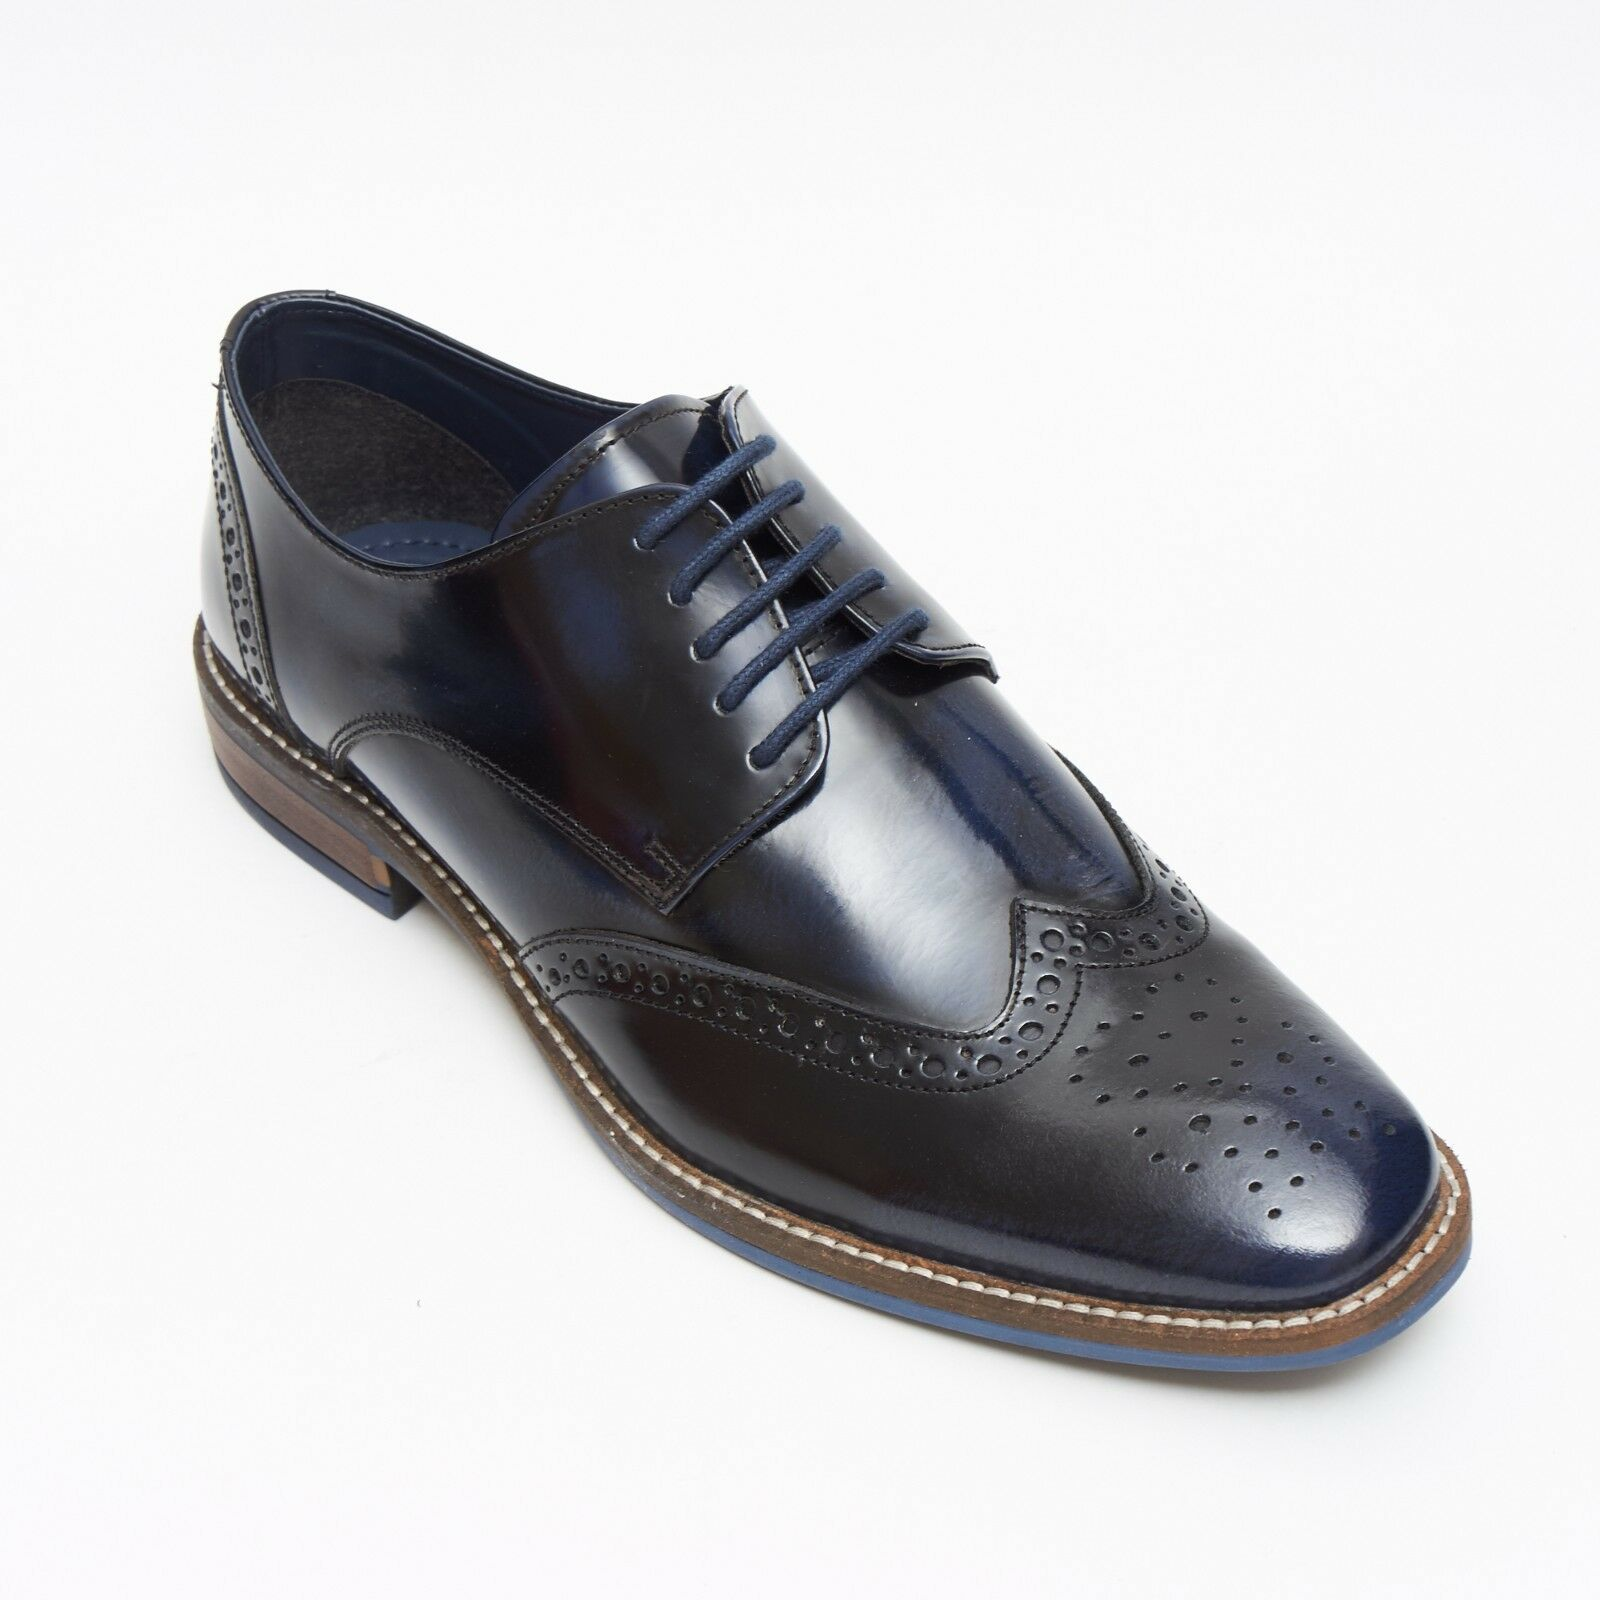 Lucini Formal Men Blue Navy Leather Formal Lace-Up Brogues Shoes Wedding Office